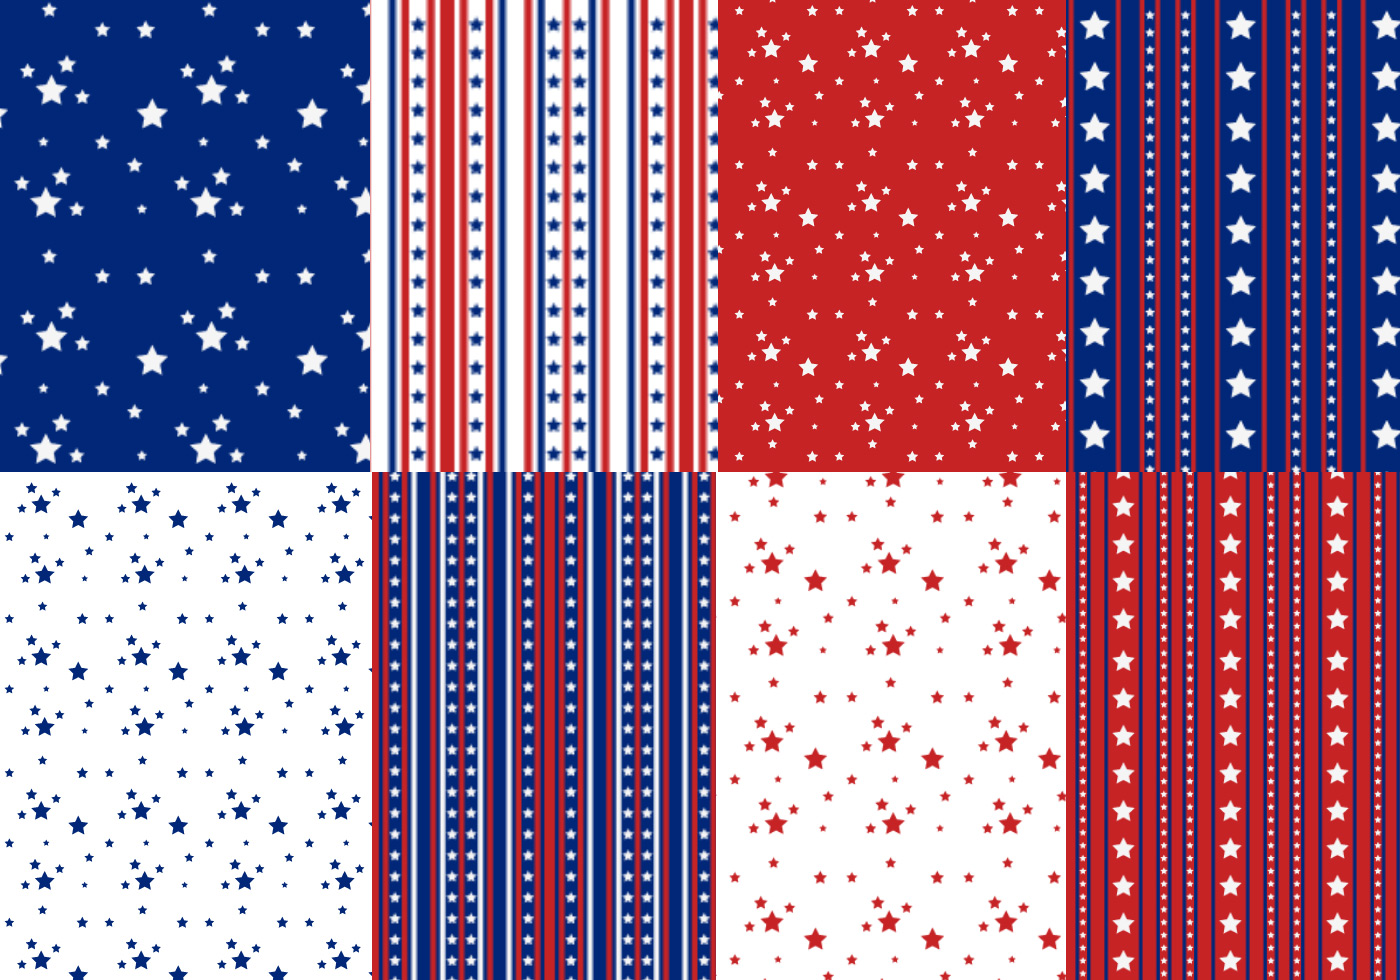 Stars-and-stripes-vector-pattern-pack